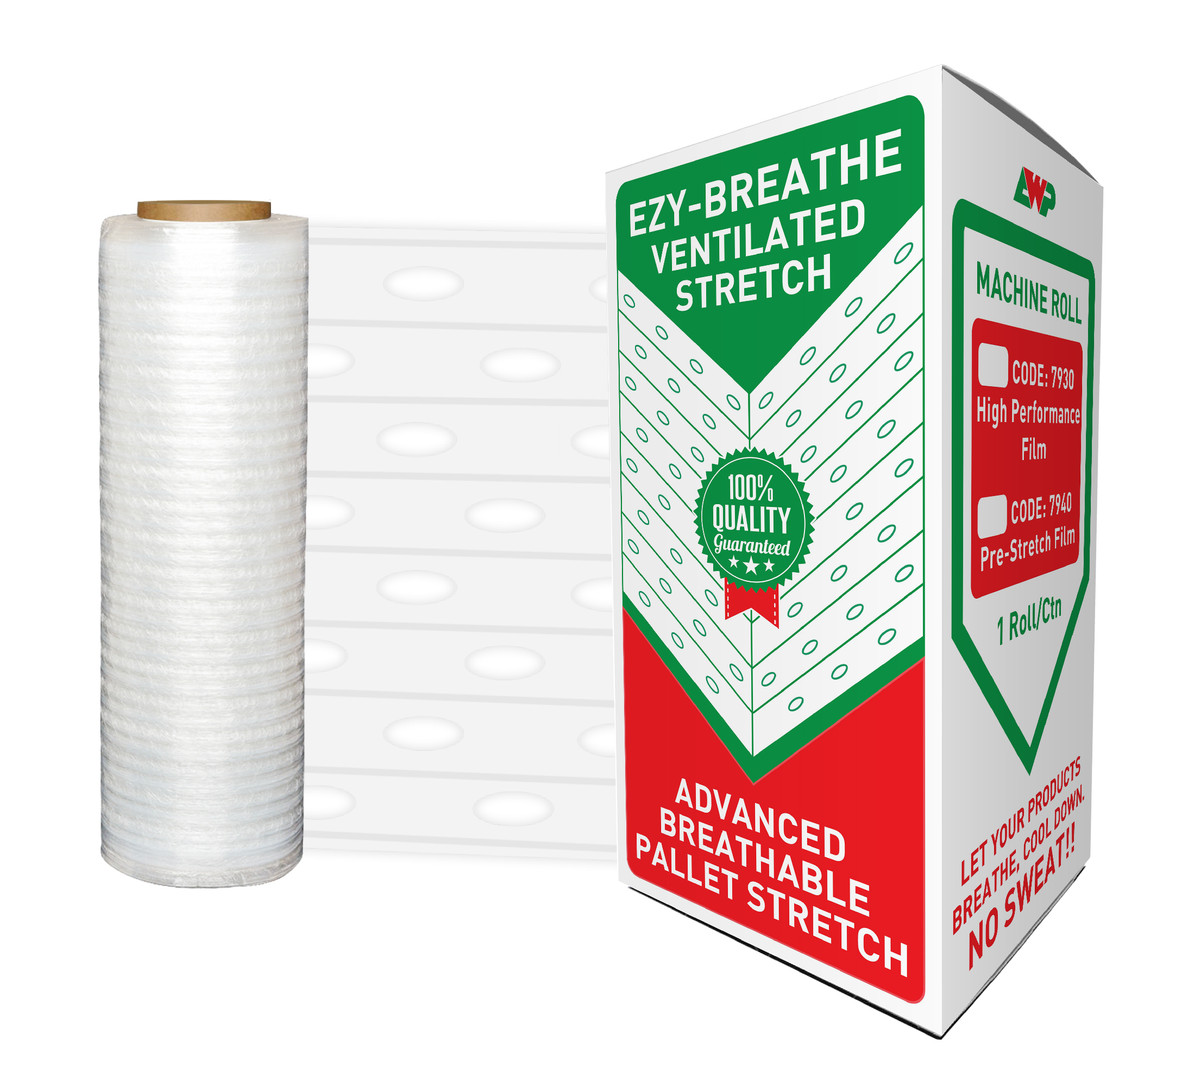 Ezy-Breathe Ventilated_3D.jpg